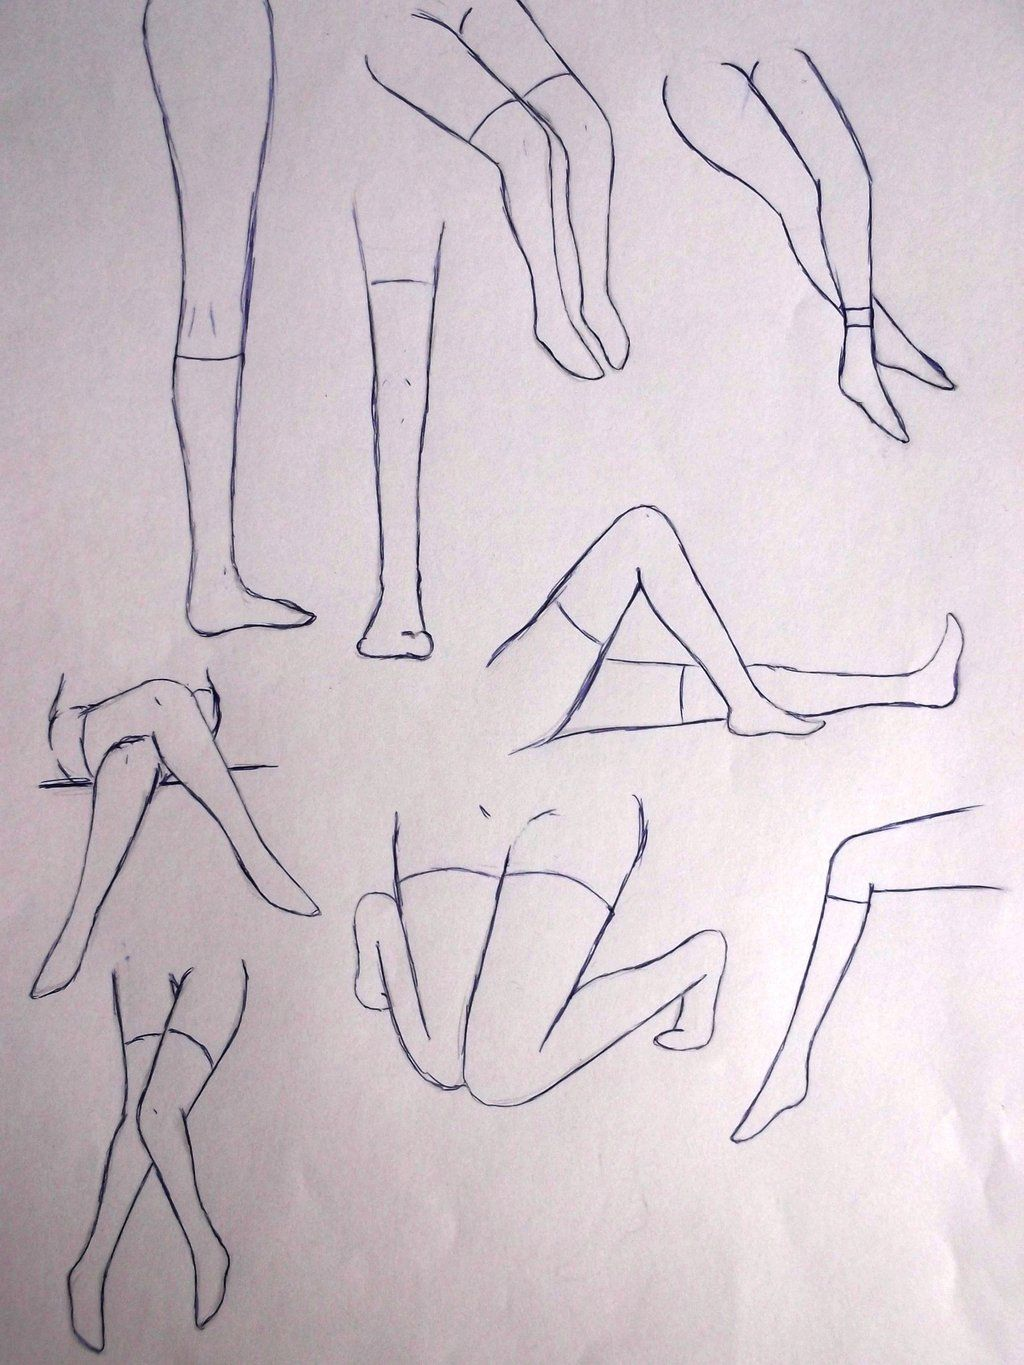 Anime Legs Anime Drawings Tutorials Drawing Anime Hands Drawing Anime Bodies